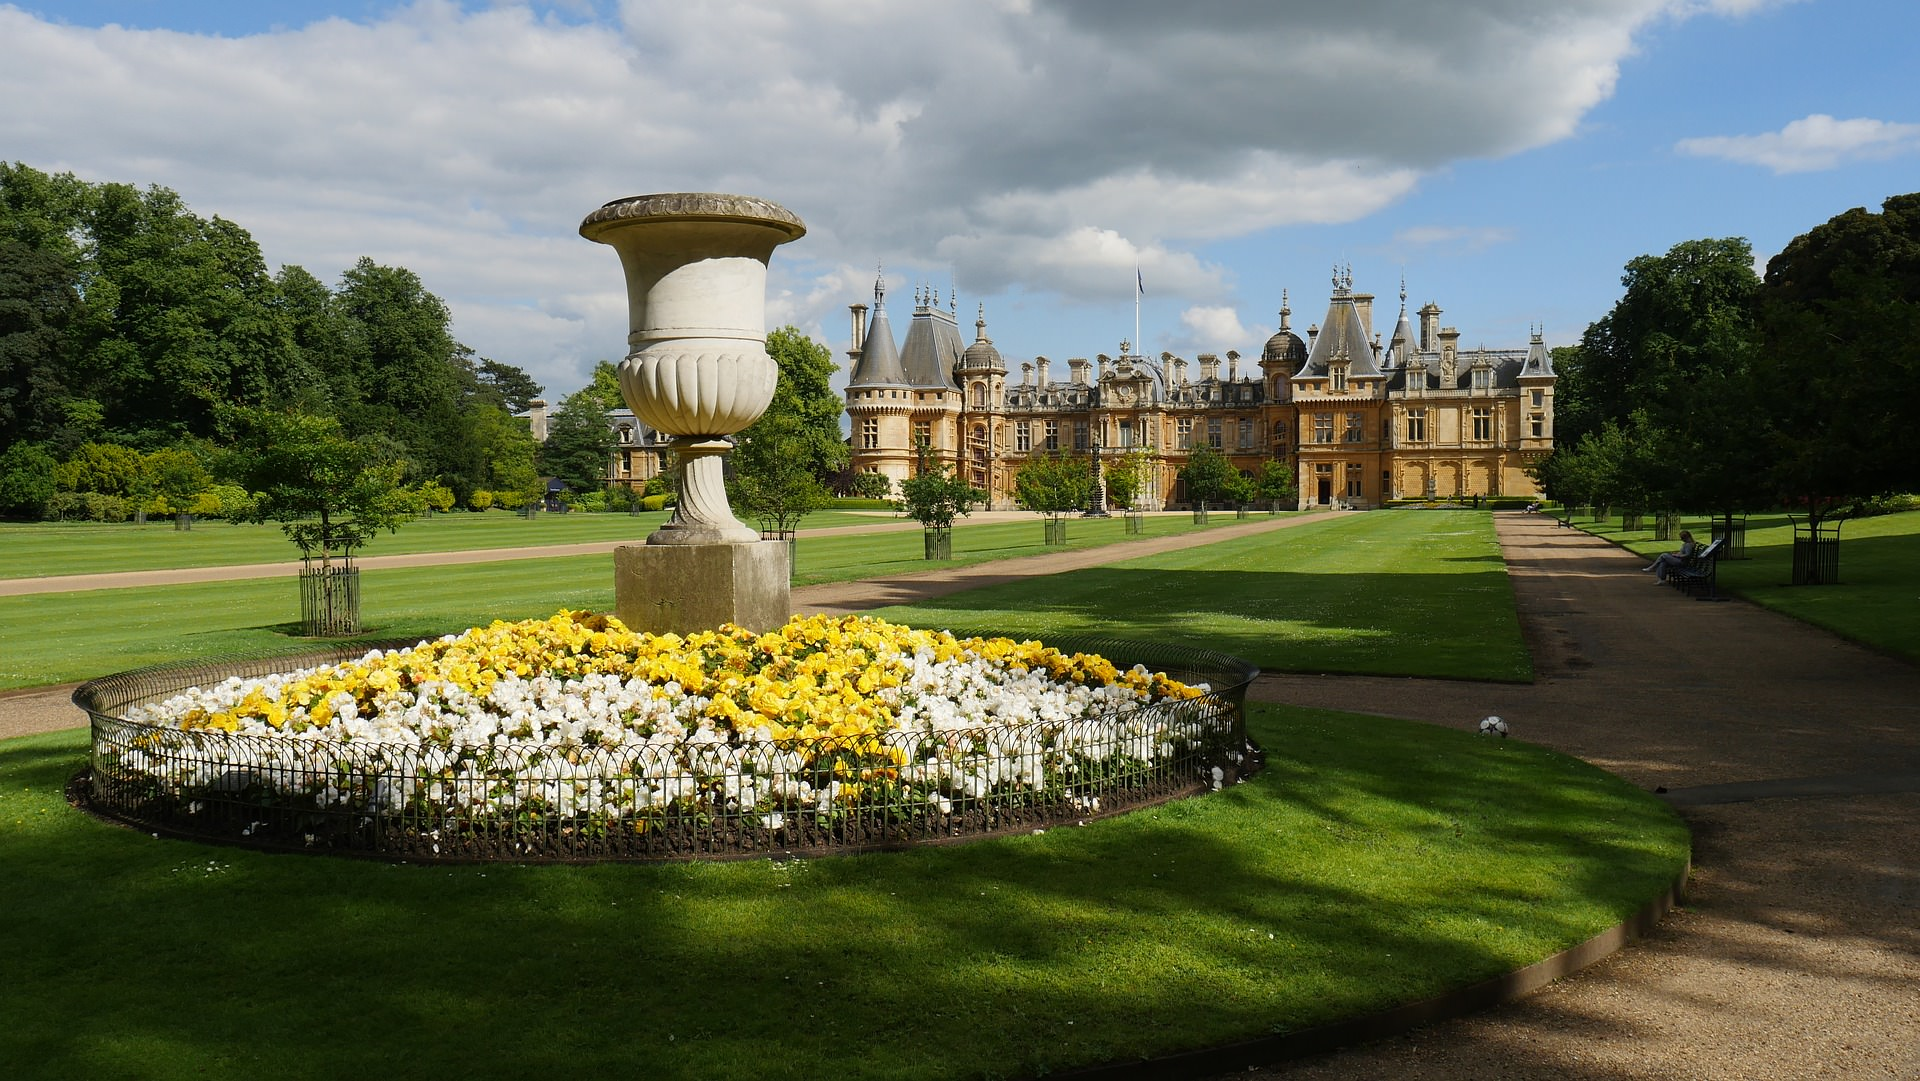 An image of a English country garden with a water fountain in the foreground and a castle in the background.